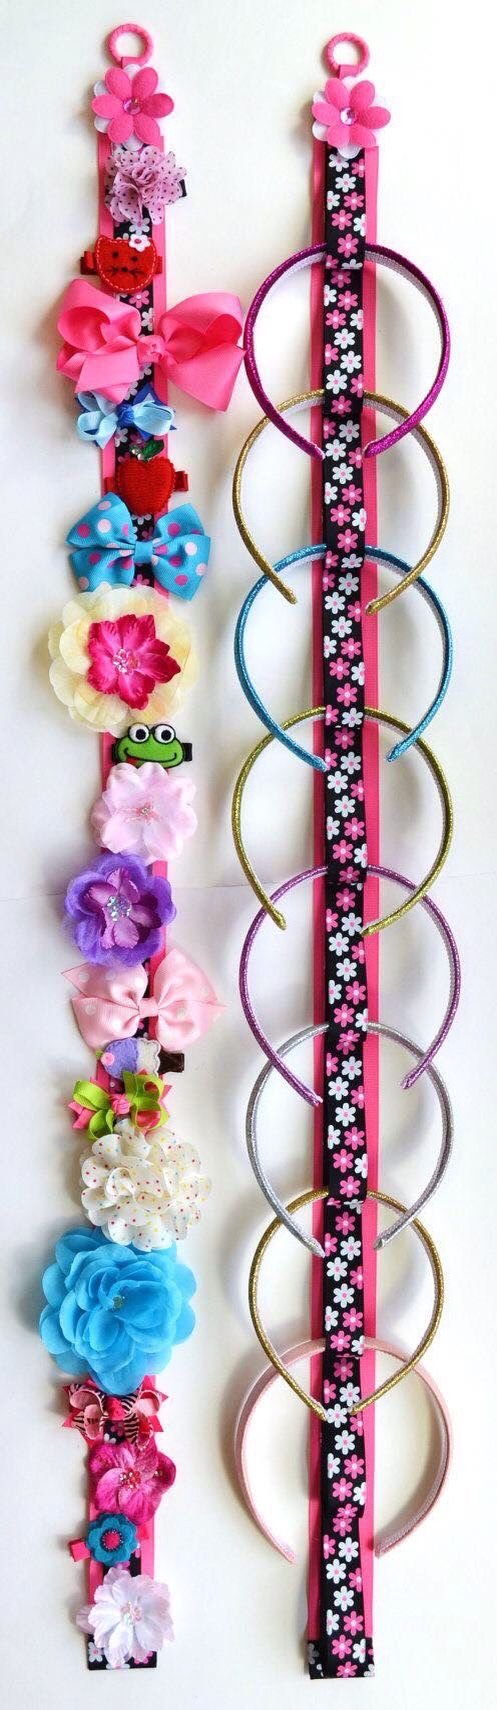 Di diy baby hair accessories holder - Find This Pin And More On Ideias Meninas Funky Flower Matching Headband Holder